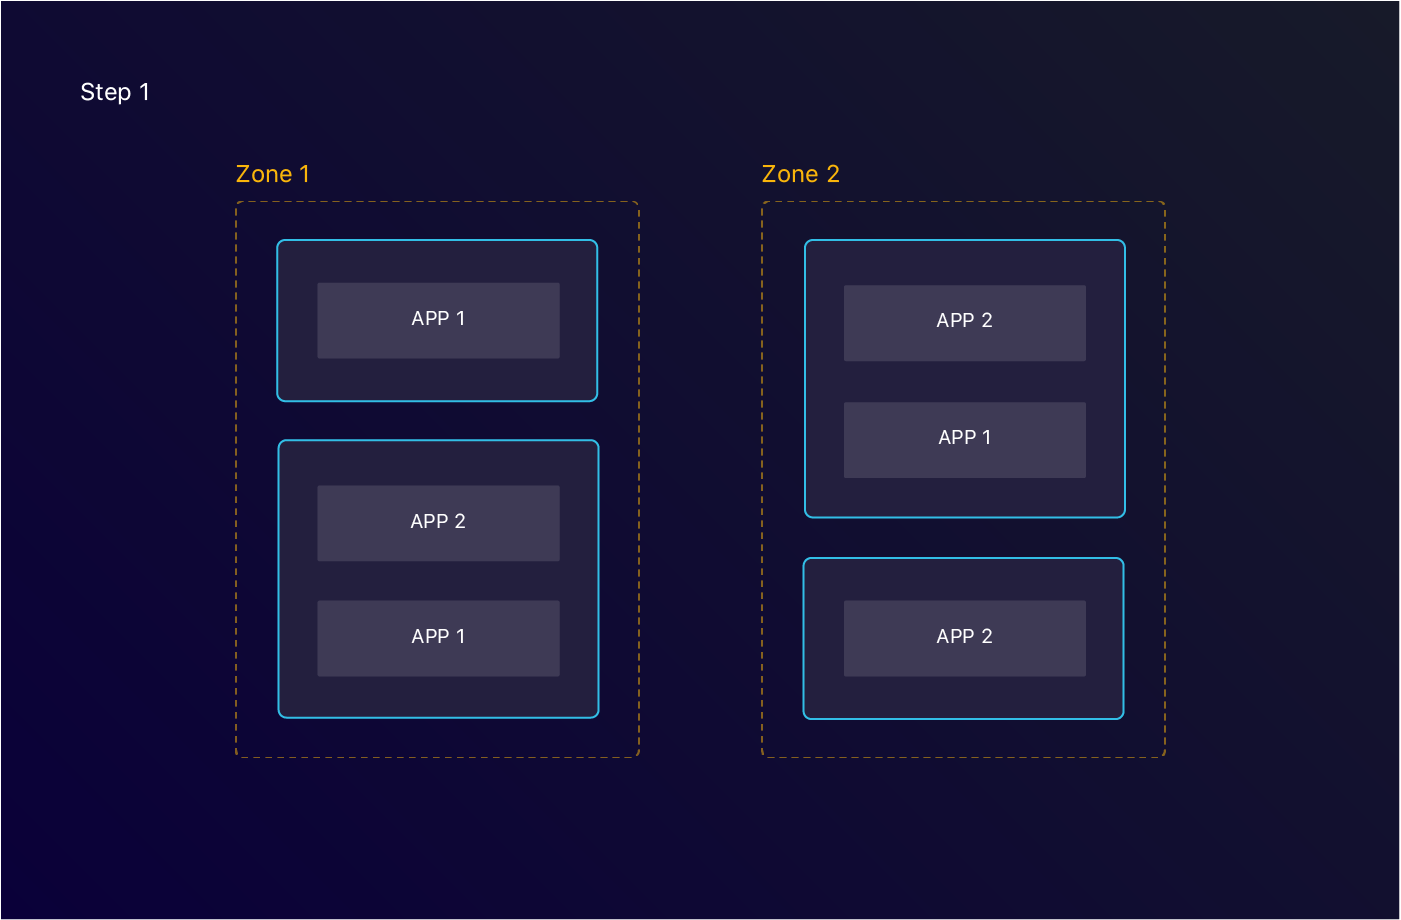 2 different applications are deployed across different zones and nodes